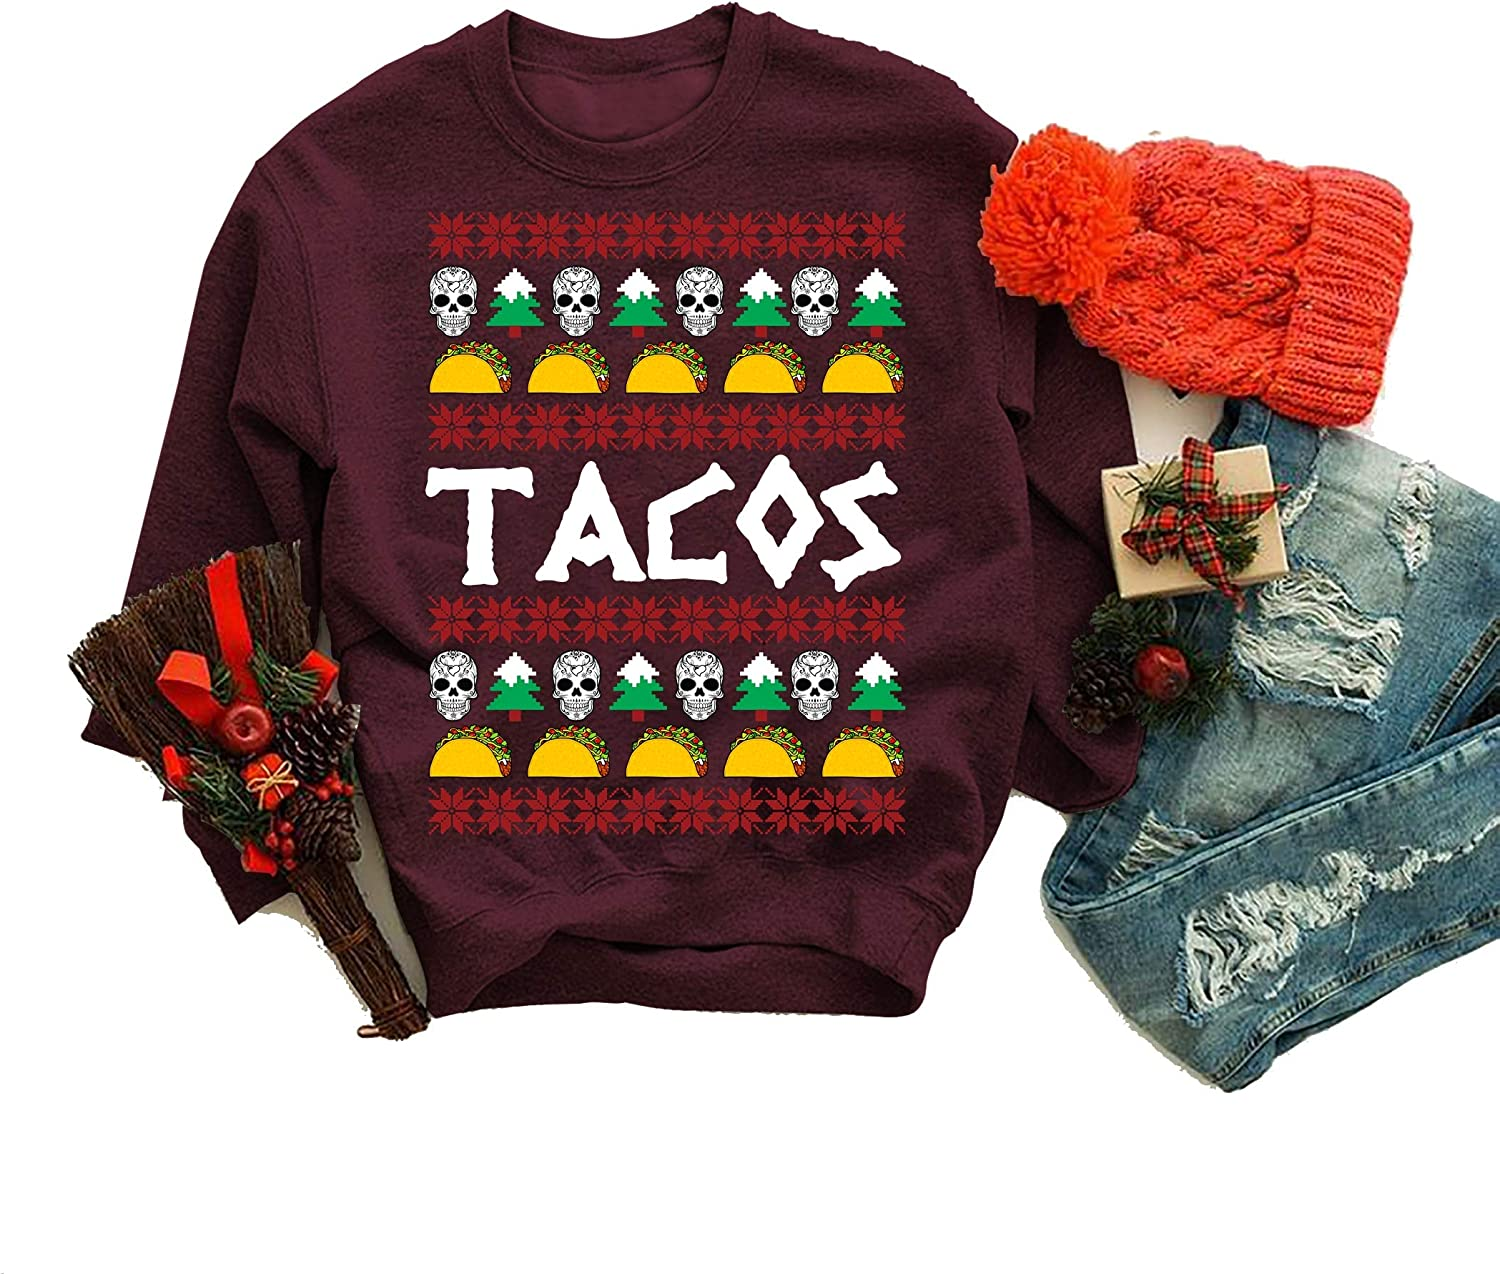 Ugly Christmas Sweatshirt Sales of SALE items from new works Tacos Skulls Maro Sweater Ranking TOP4 Gift Xmas on